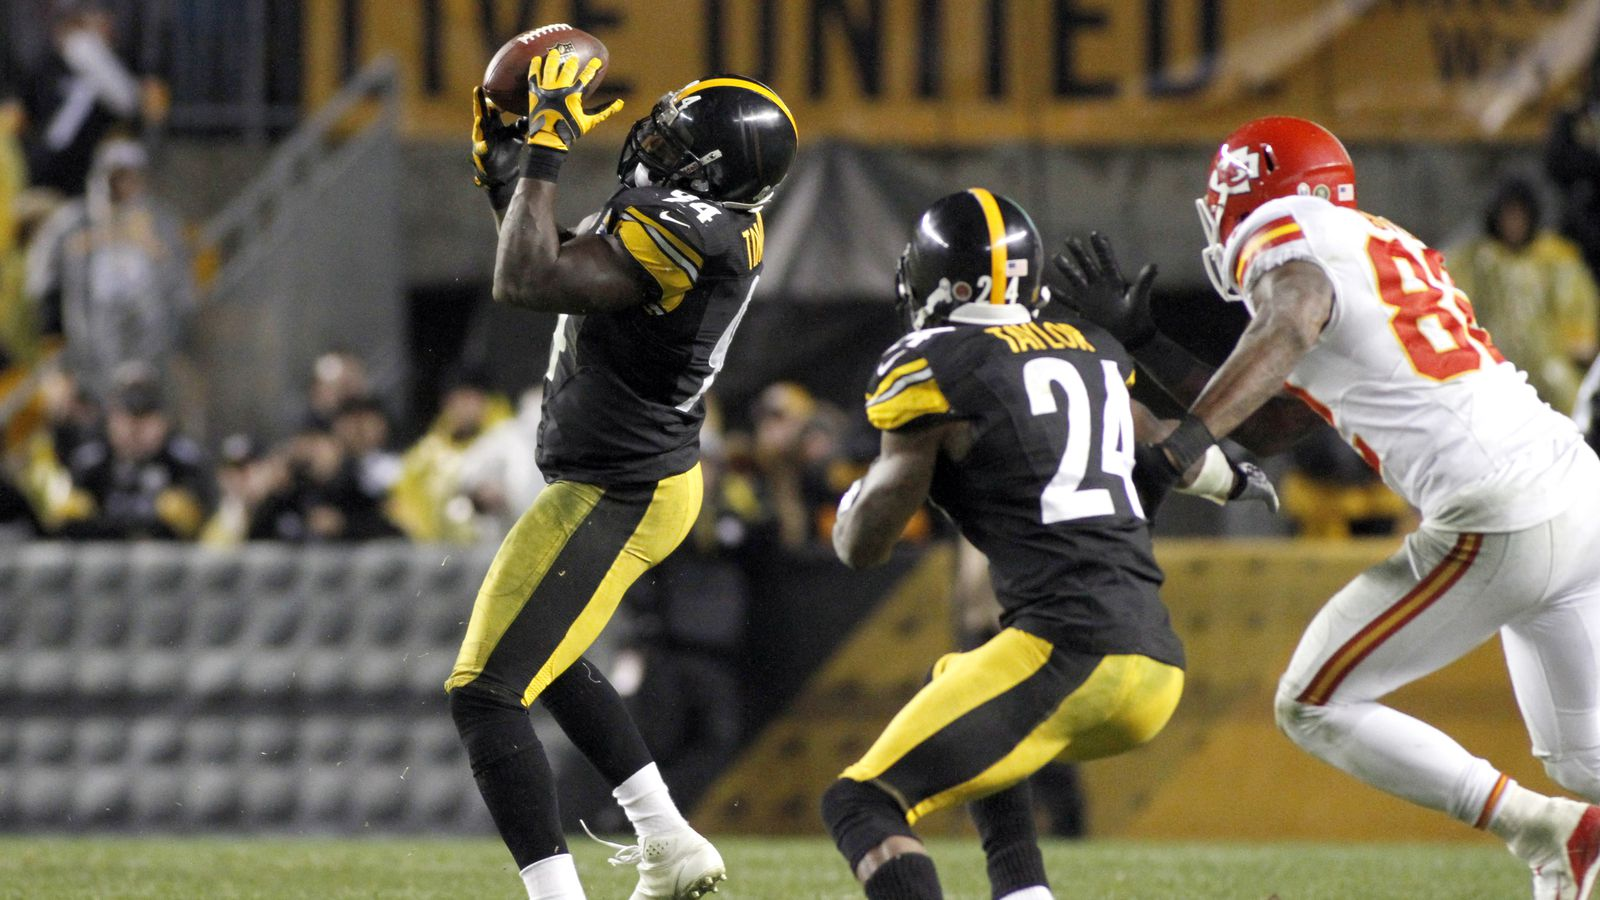 ... go as far as Lawrence Timmons can take them - Behind the Steel Curtain